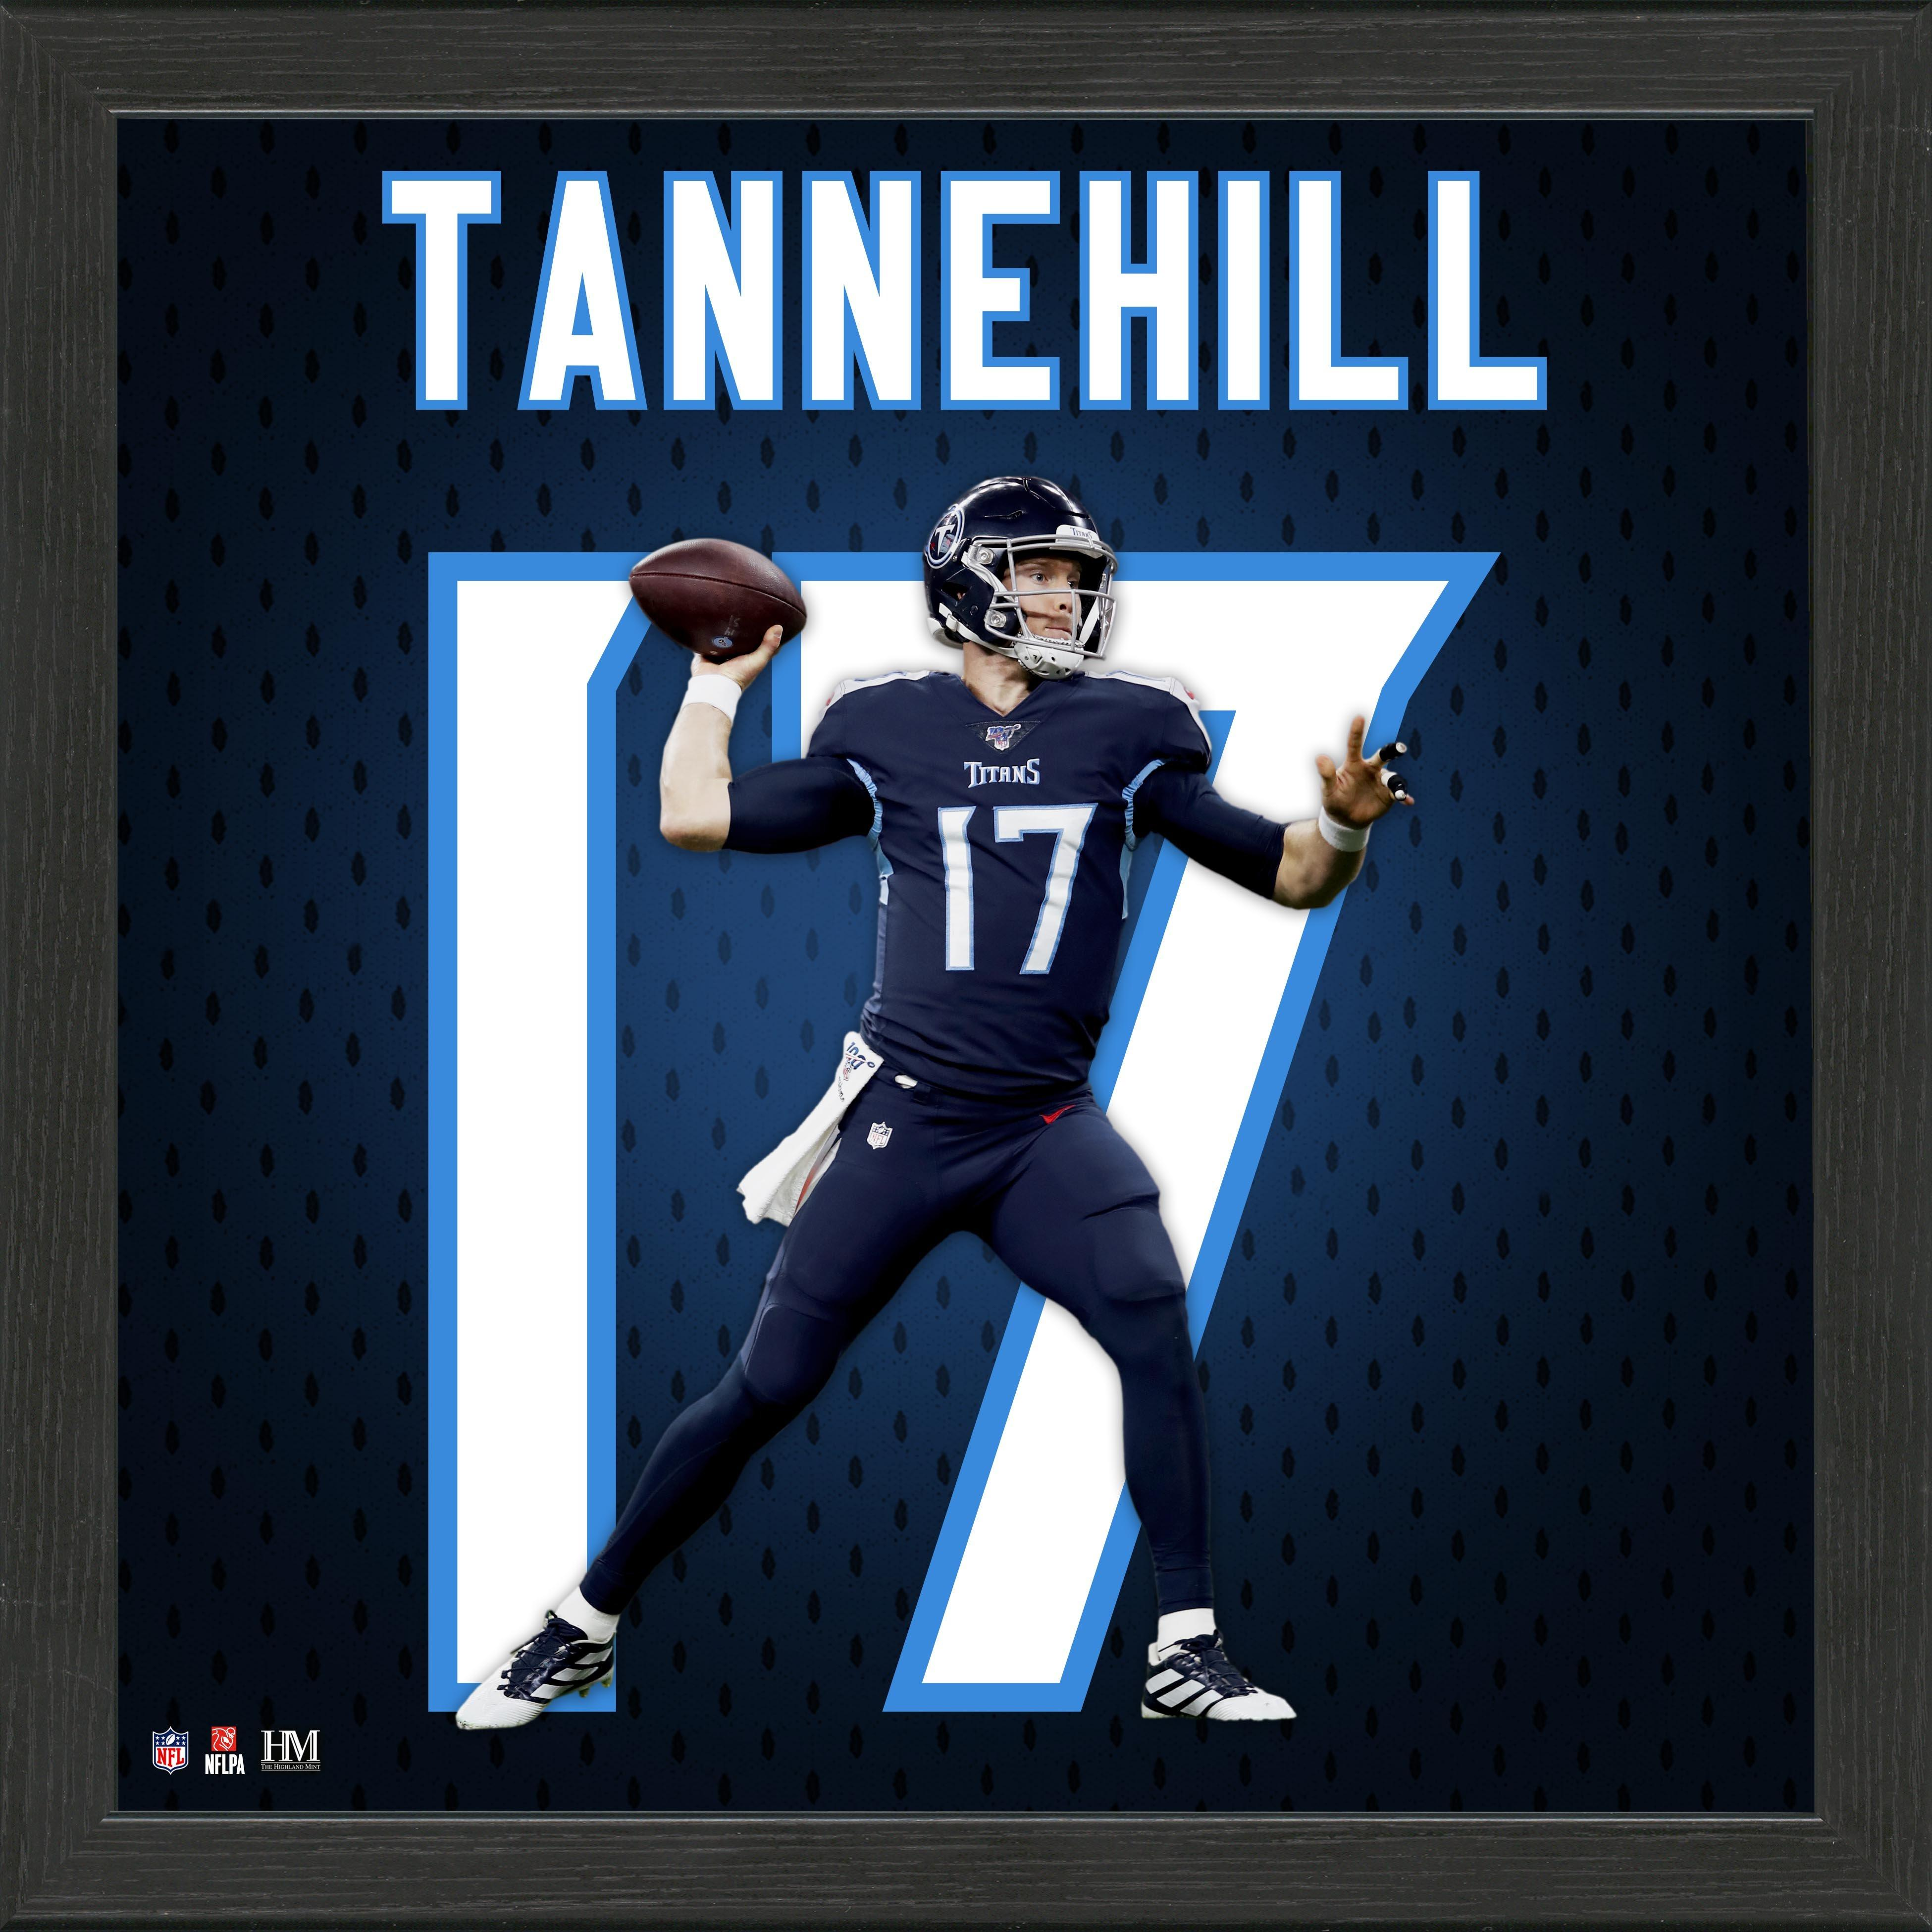 Tennessee Titans Ryan Tannehill Jersey Number Framed Photo | GameStop